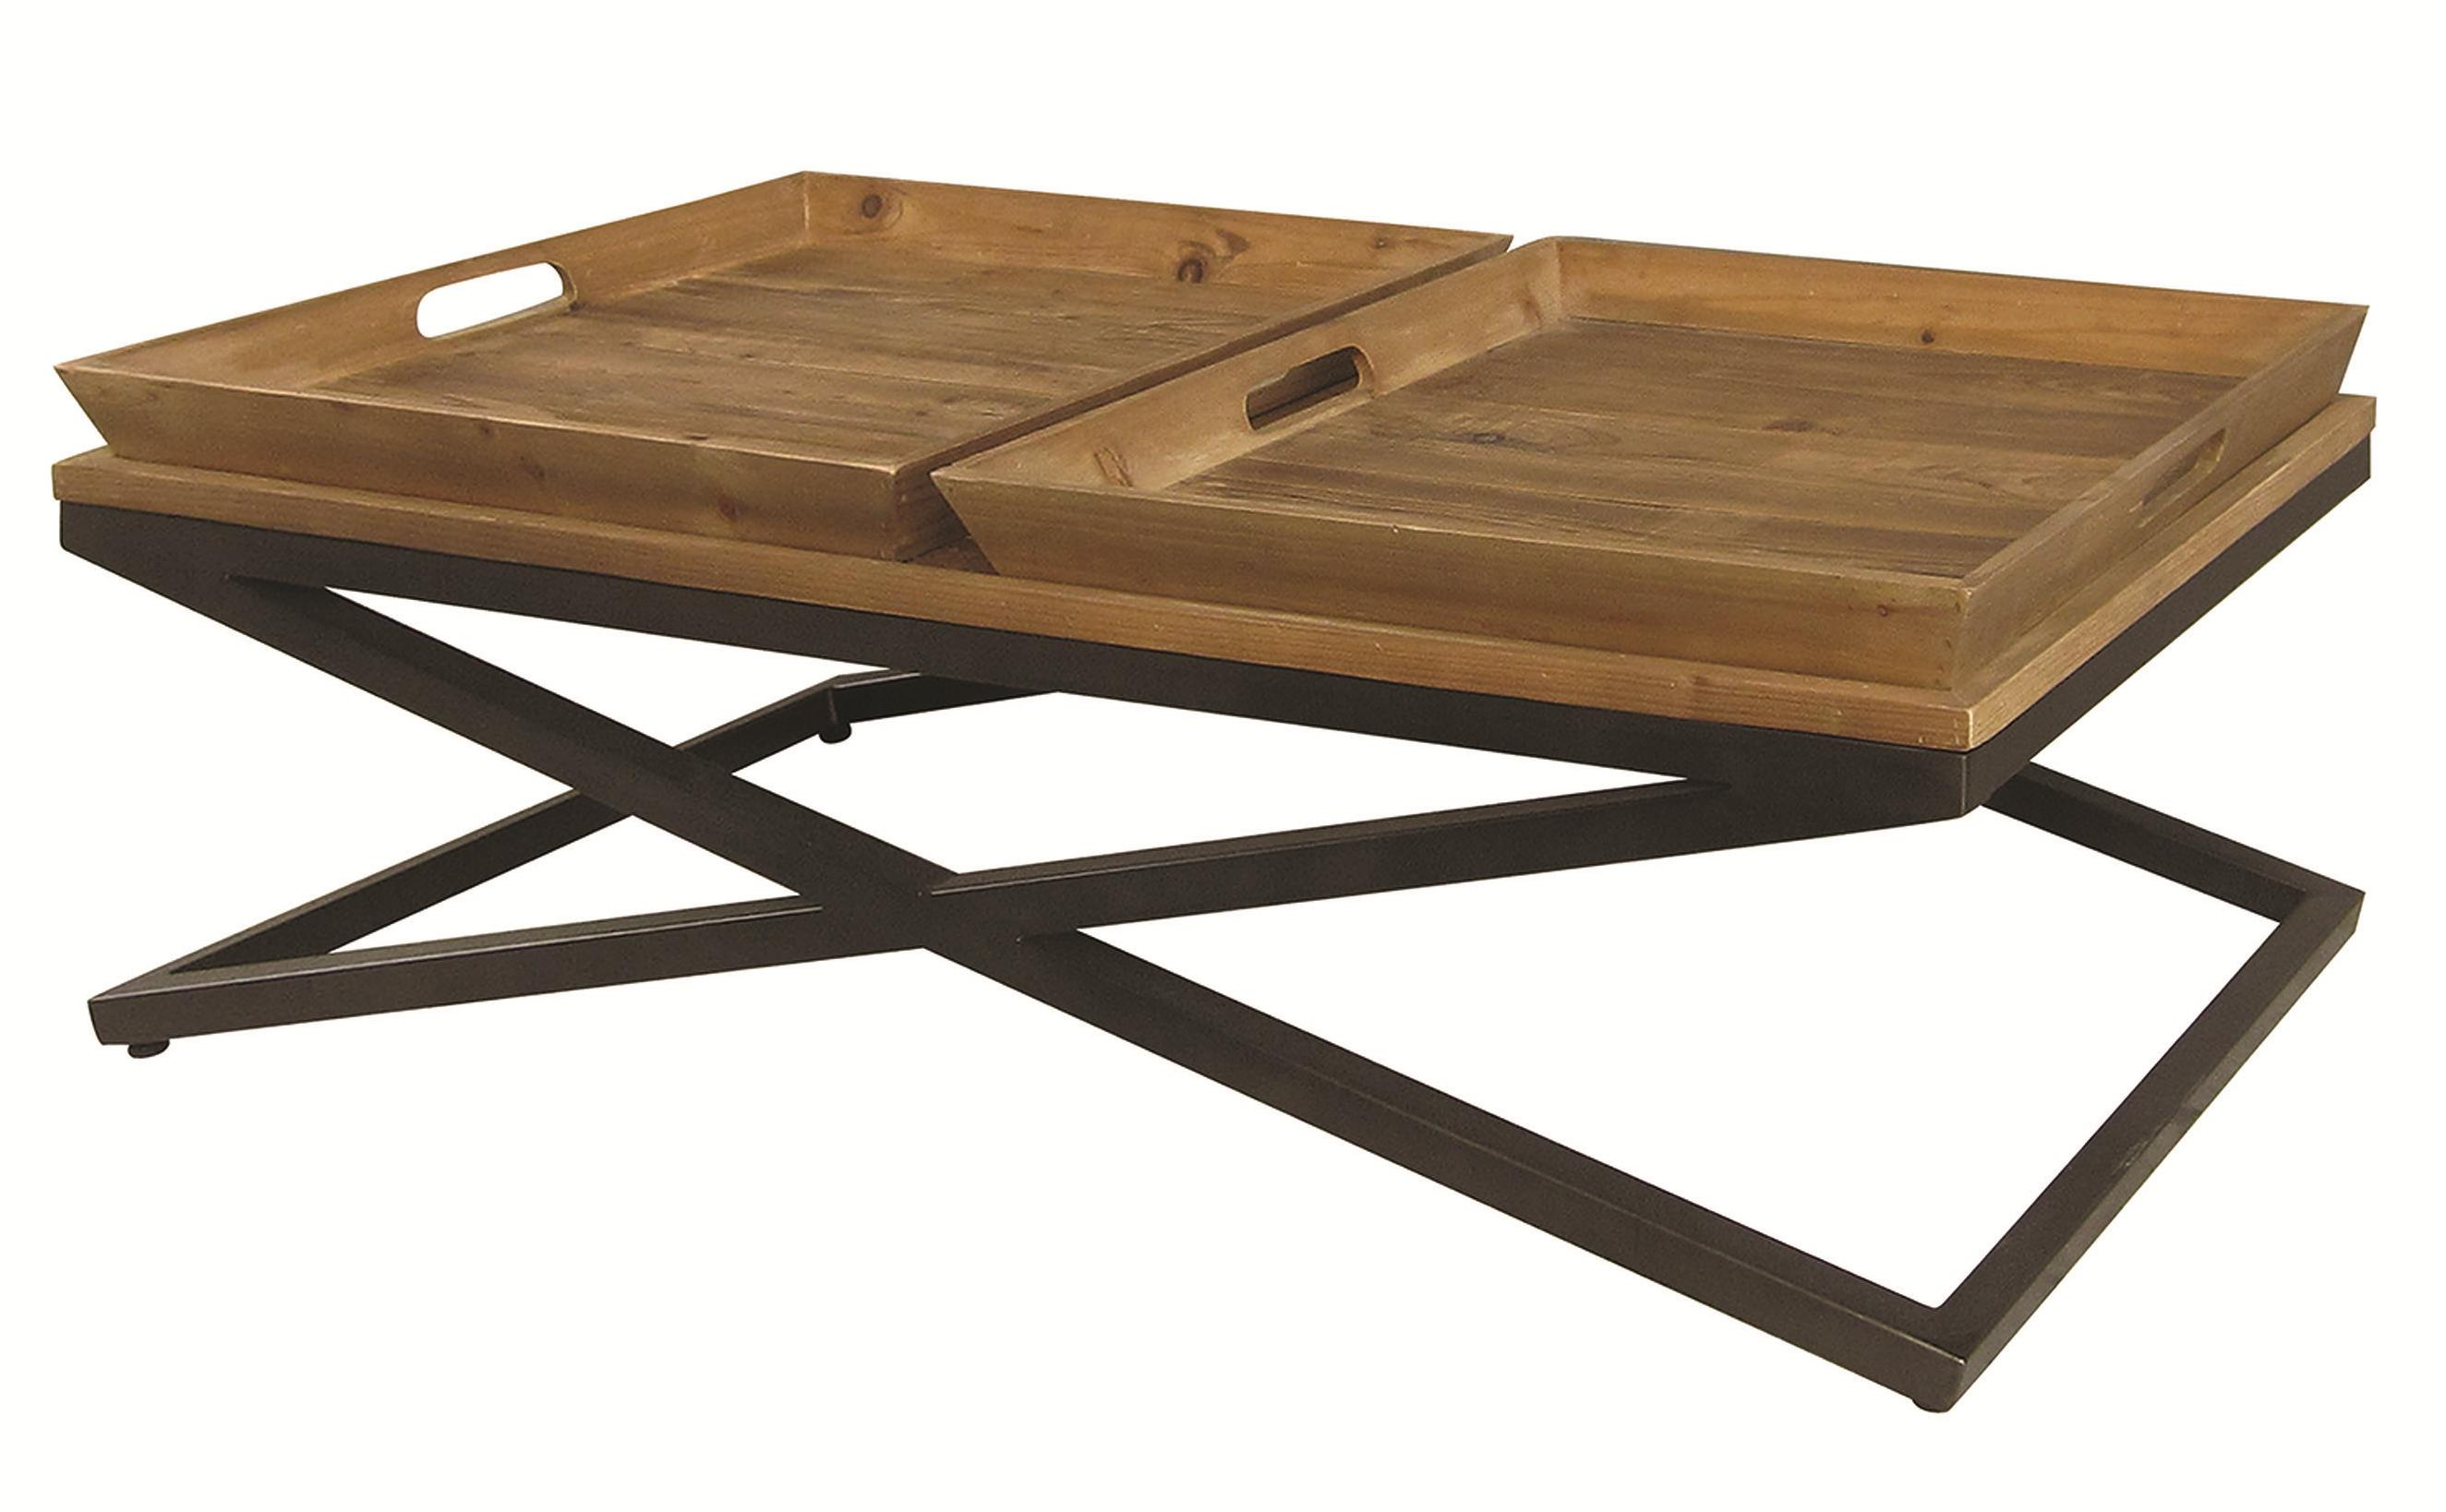 Four hands irondale jax wood metal coffee table w trays for Trays on coffee tables